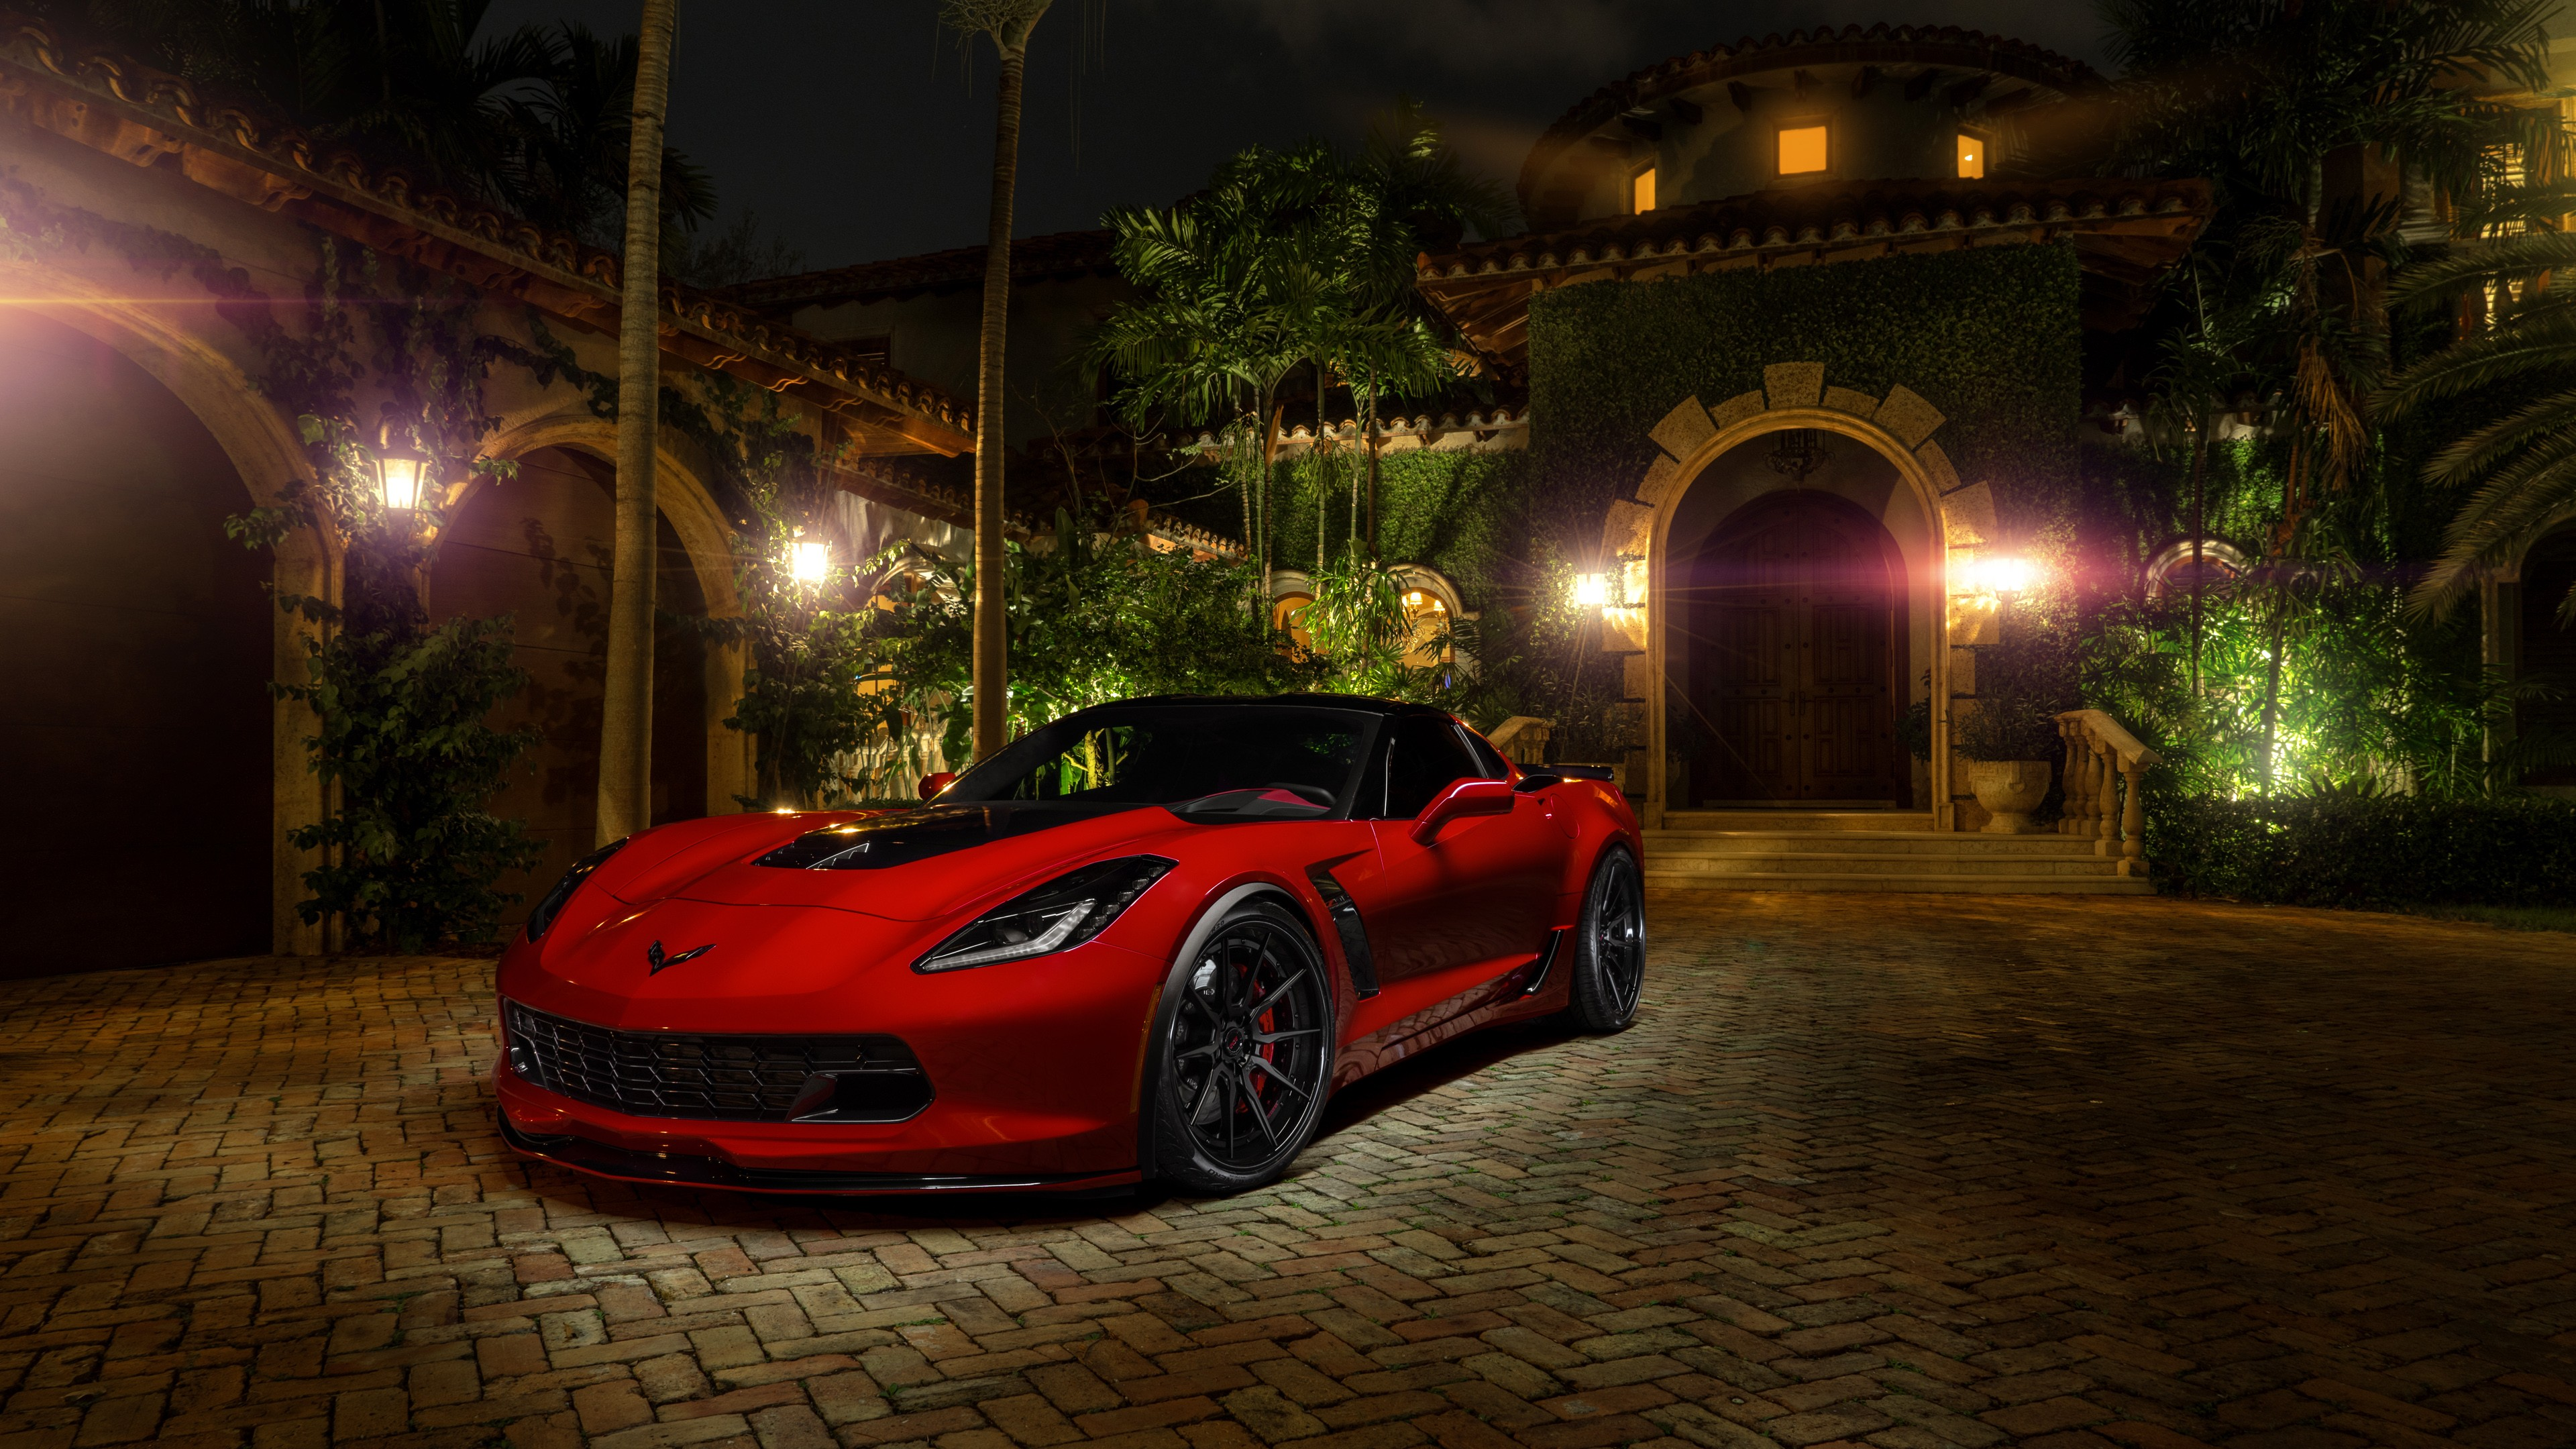 Adv1 Chevrolet Corvette C7 Z06 Wallpaper Hd Car